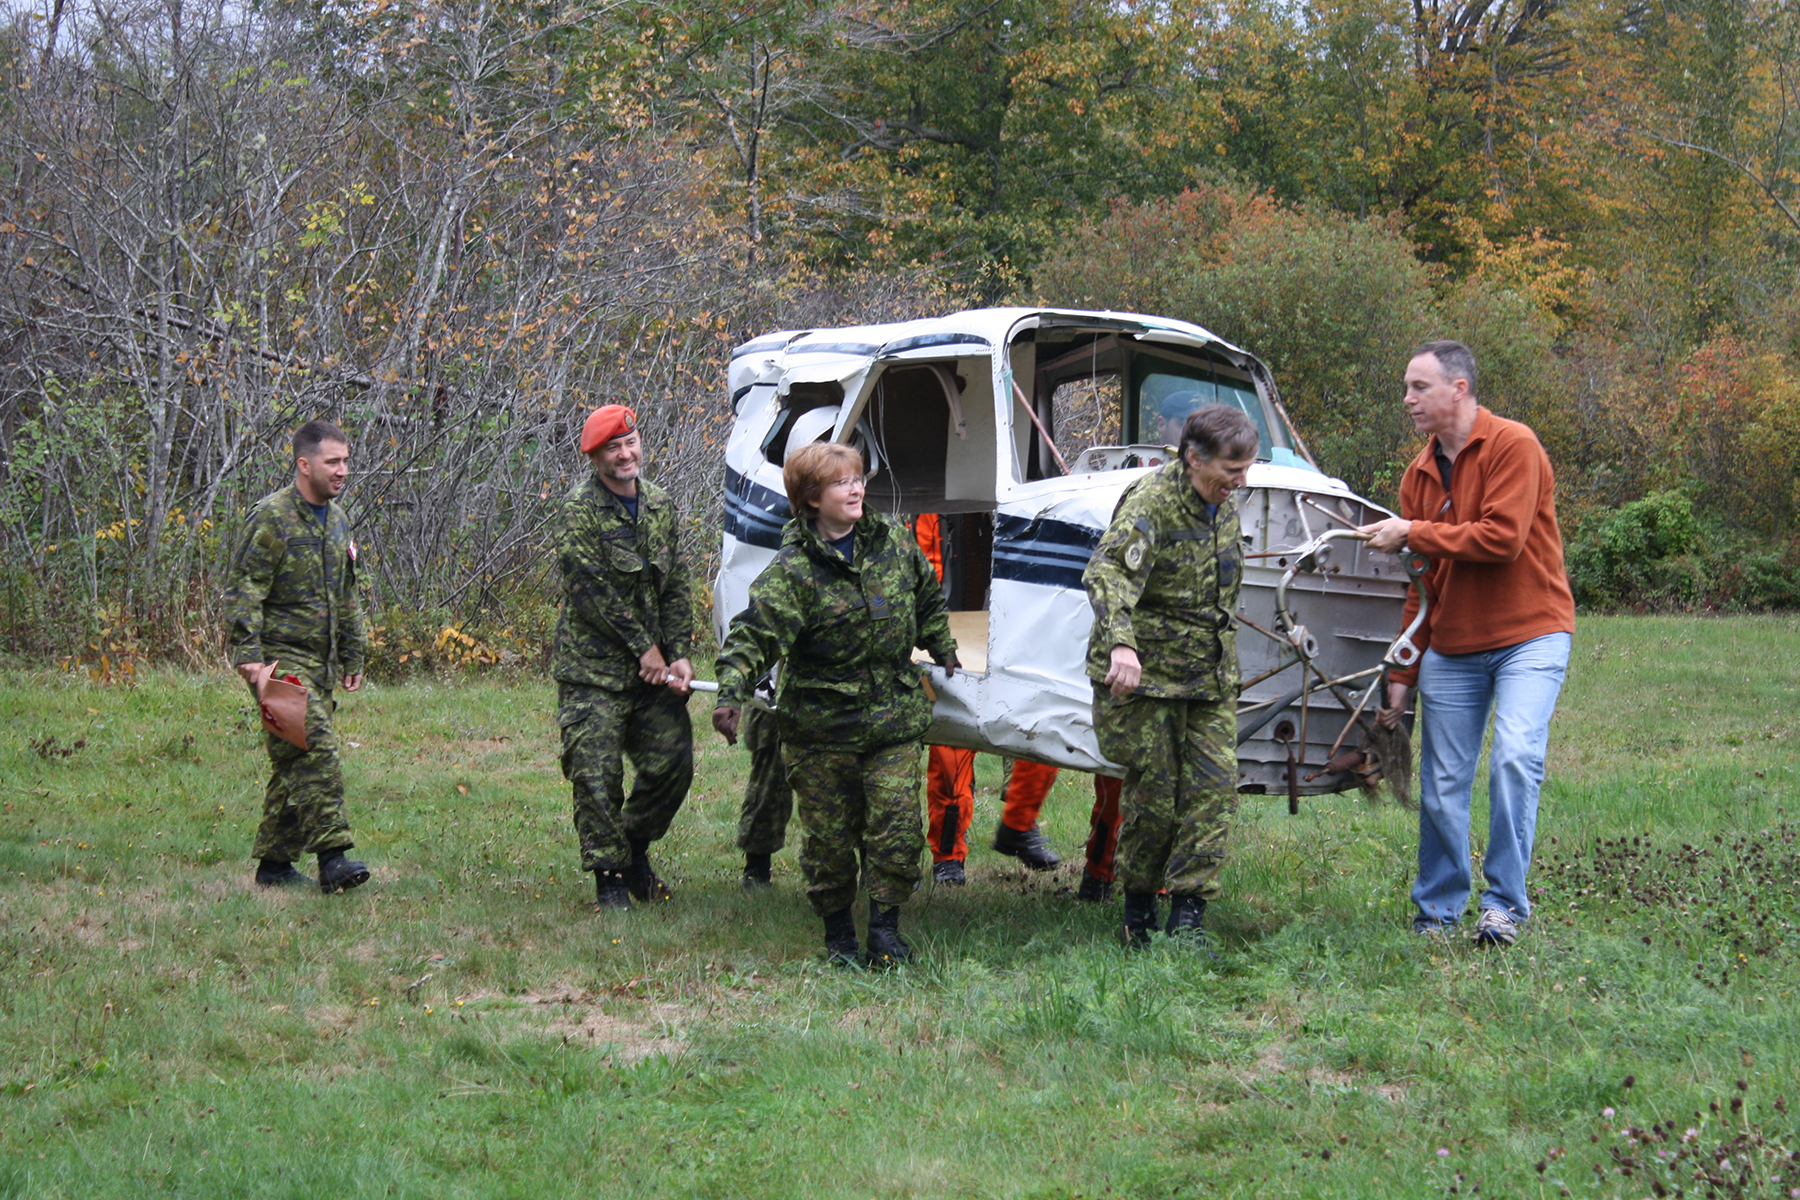 On October 5, 2018, organizers and volunteer victims of 413 Transport and Rescue Squadron's mass casualty exercise, part of the week-long search and rescue exercise, were pressed into service, moving one of two aircraft carcasses into better position for the simulated crash scene. PHOTO: Sara White